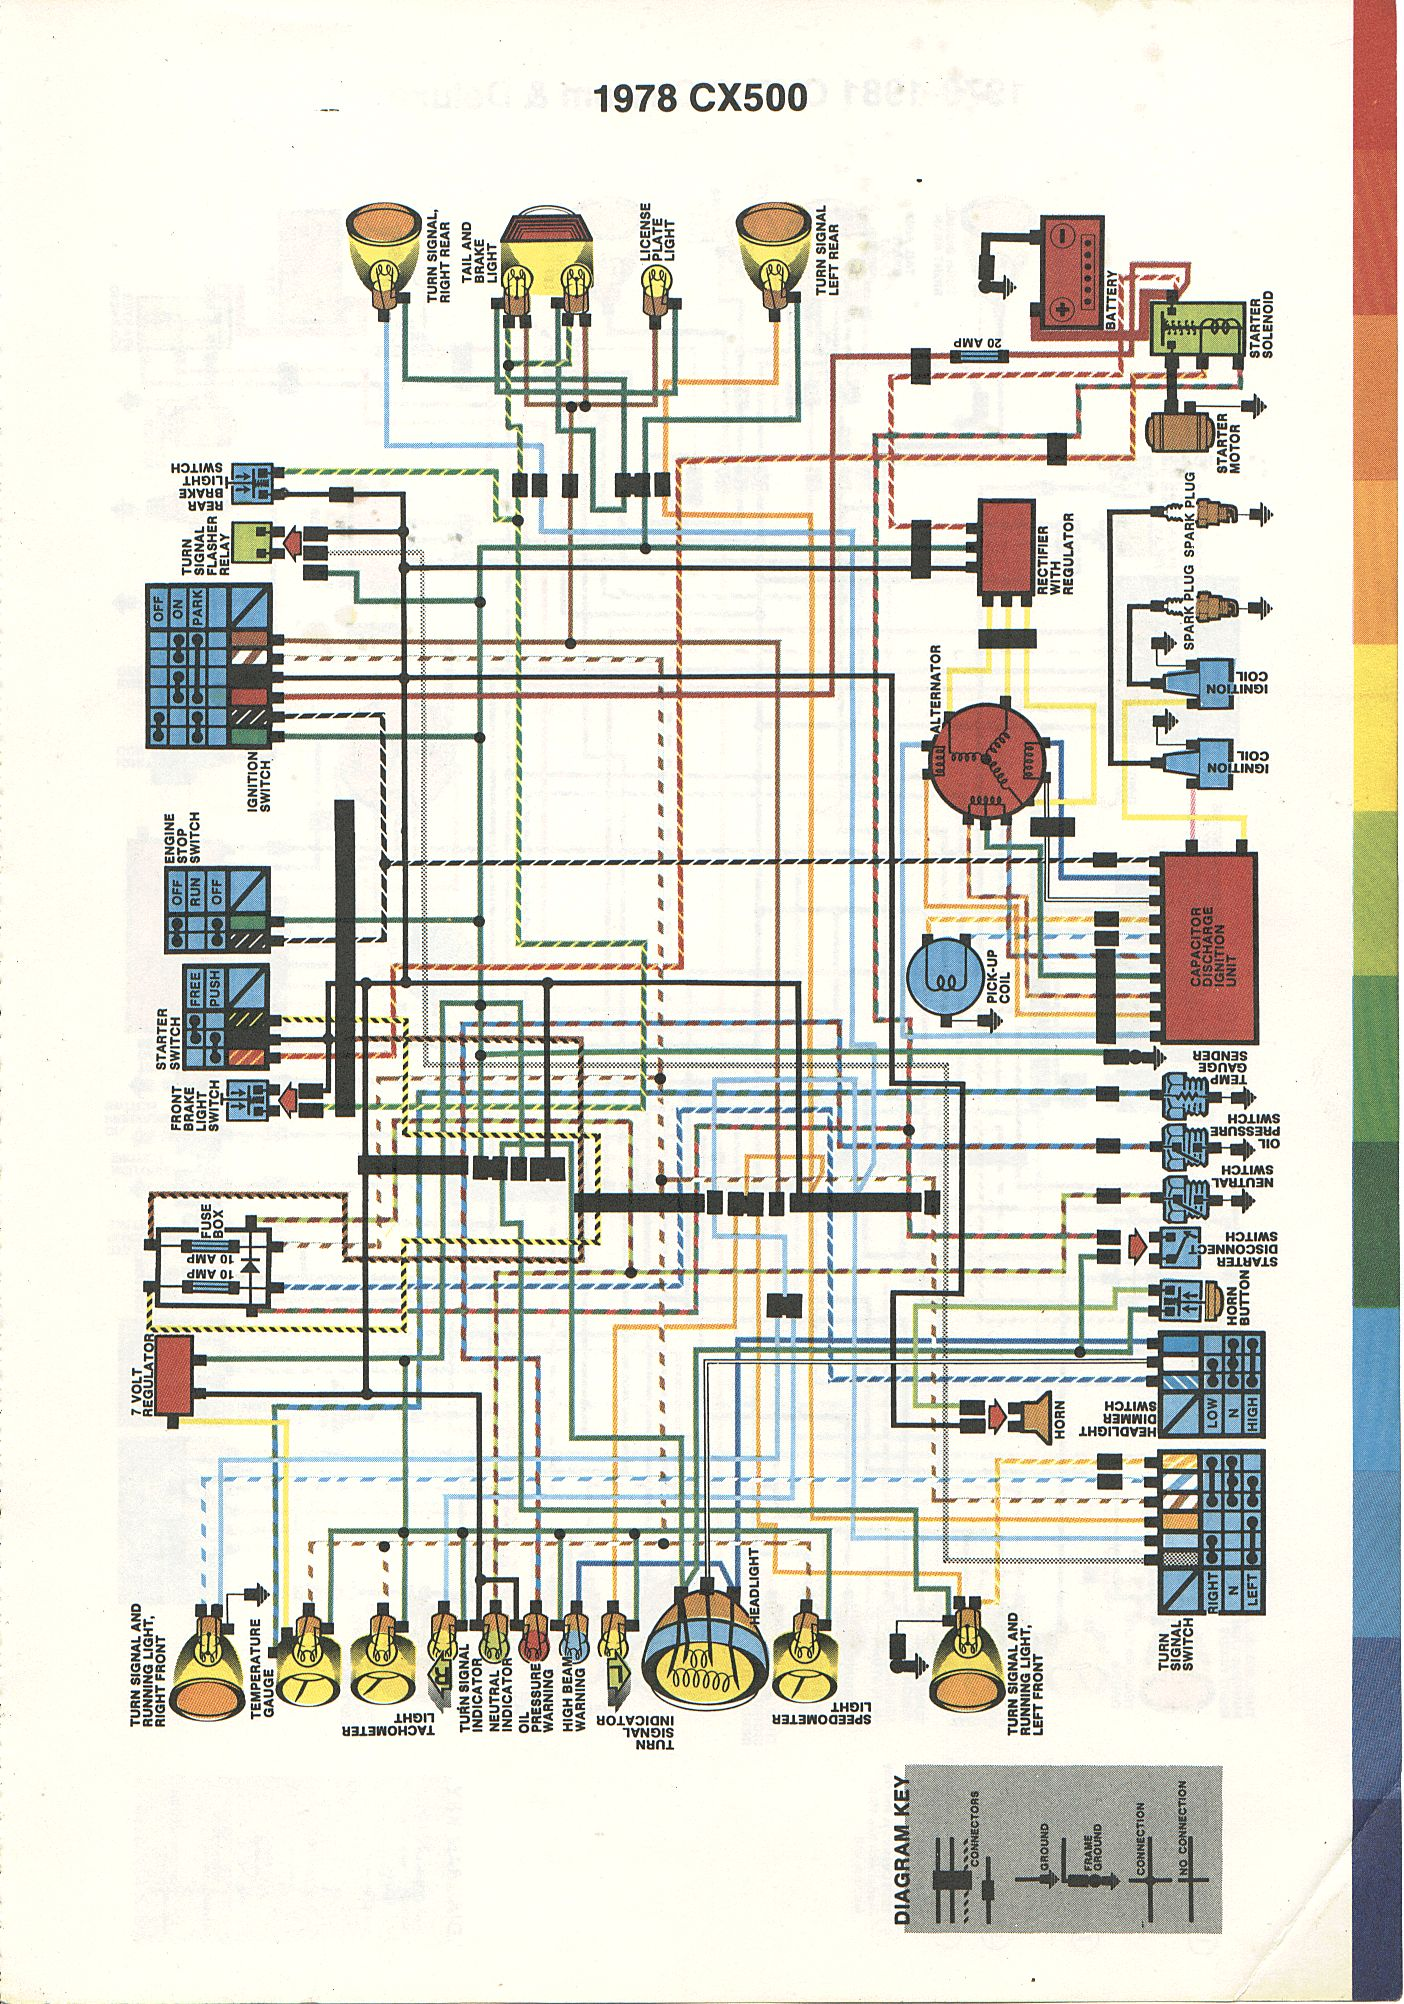 Gl500 Wiring Diagram Another Blog About Gator Cx Order Of The Knight Other Stuff Page Rh Geocities Ws 81 Headlight